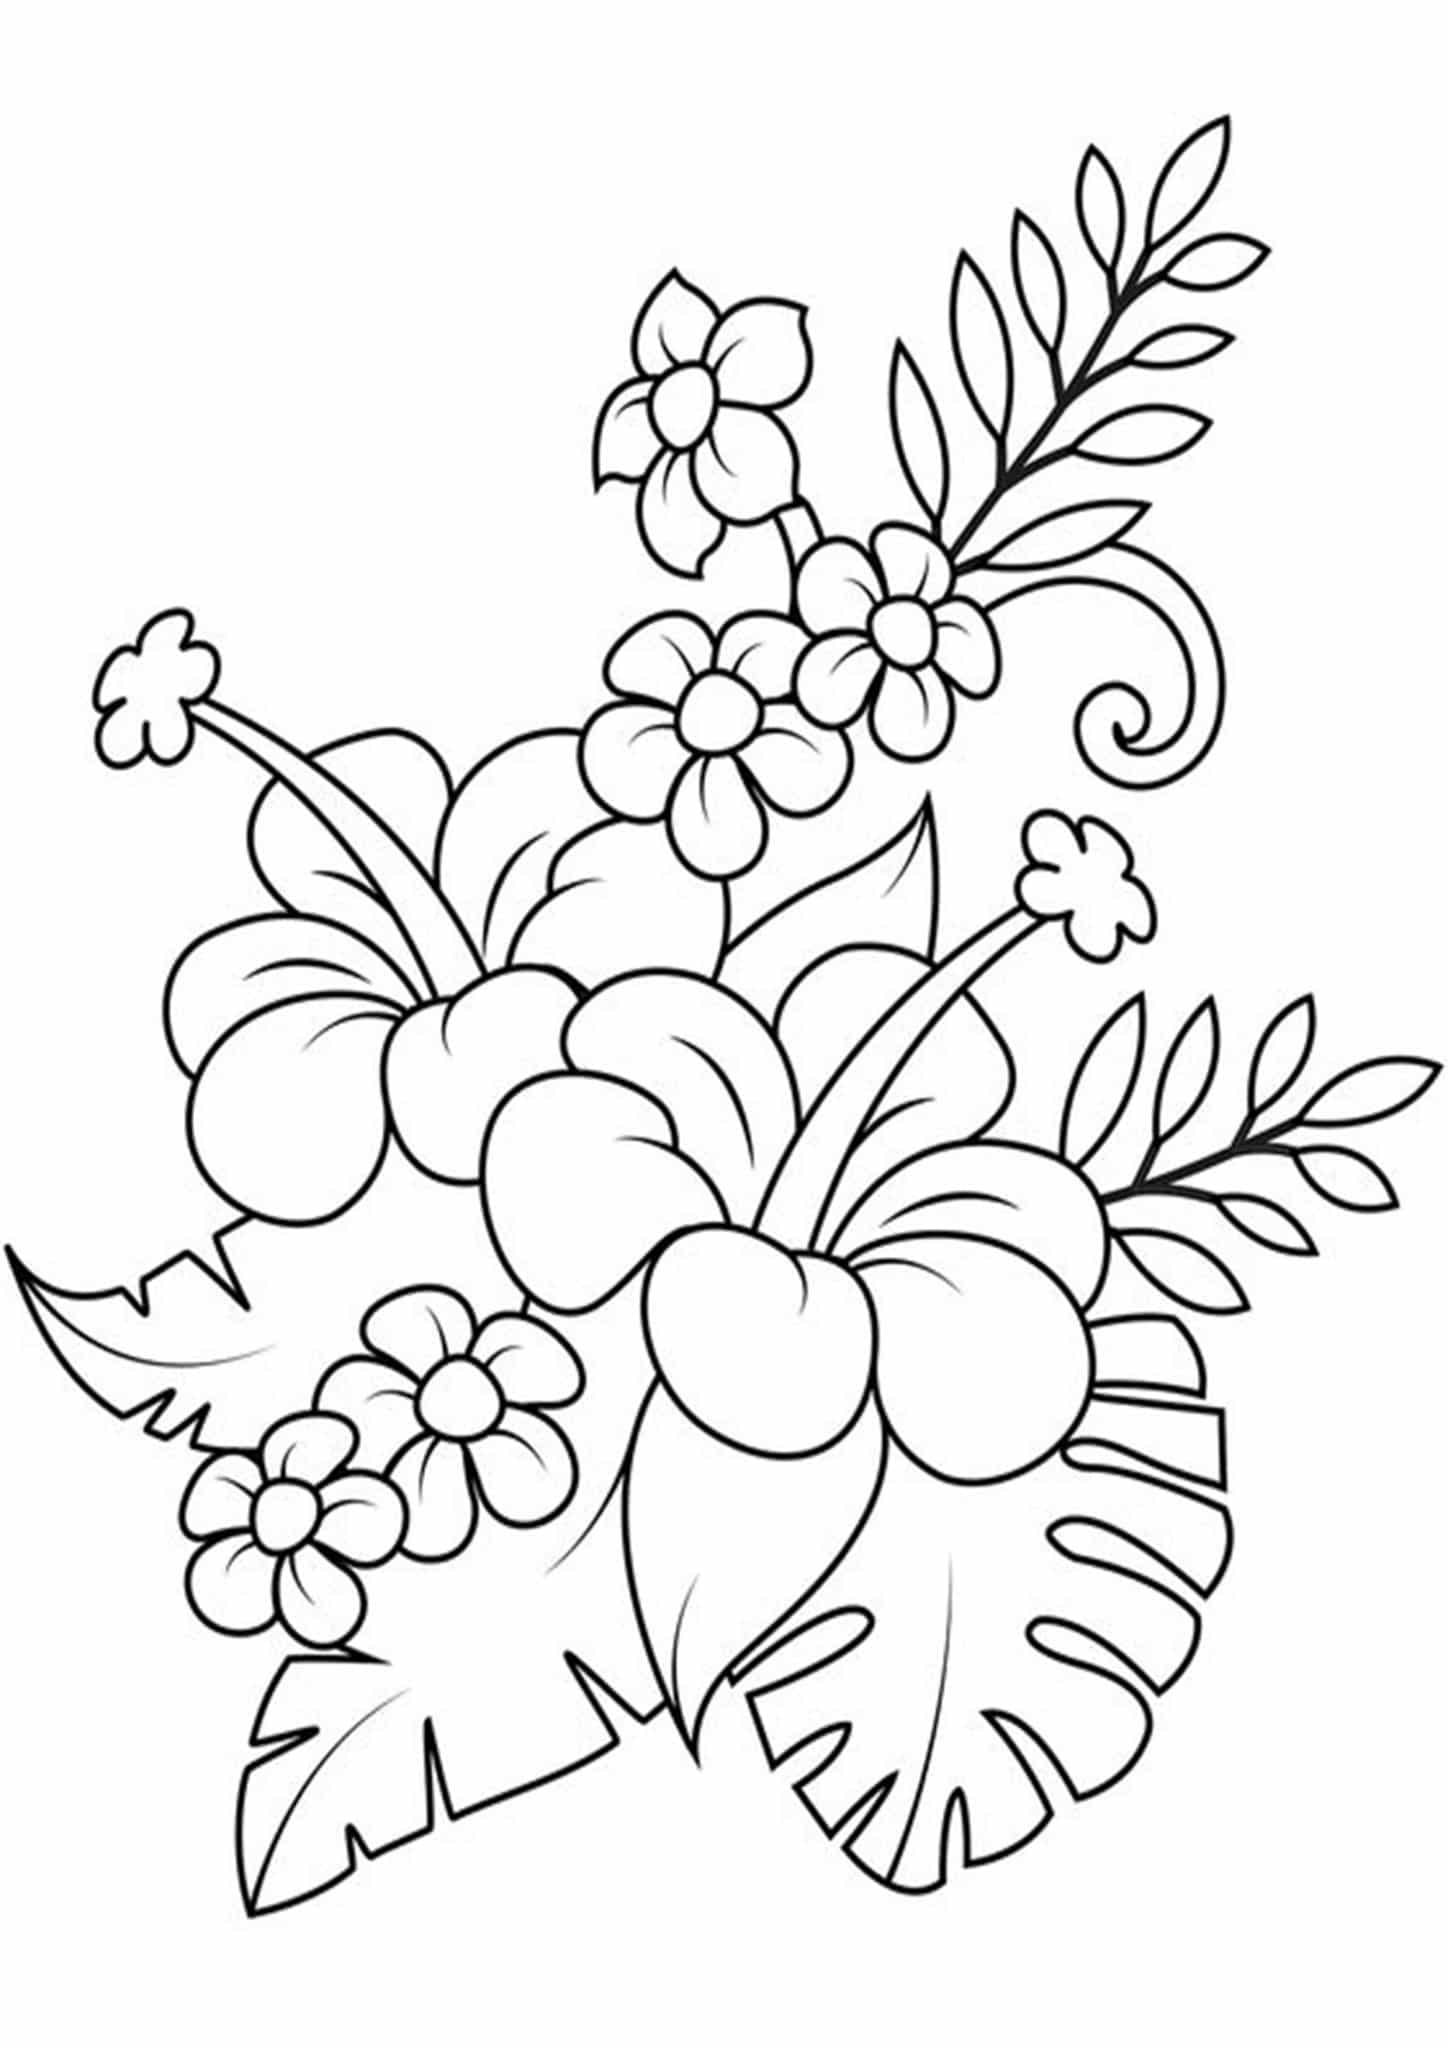 coloring pages of a flower flower coloring pages getcoloringpagescom pages coloring flower a of